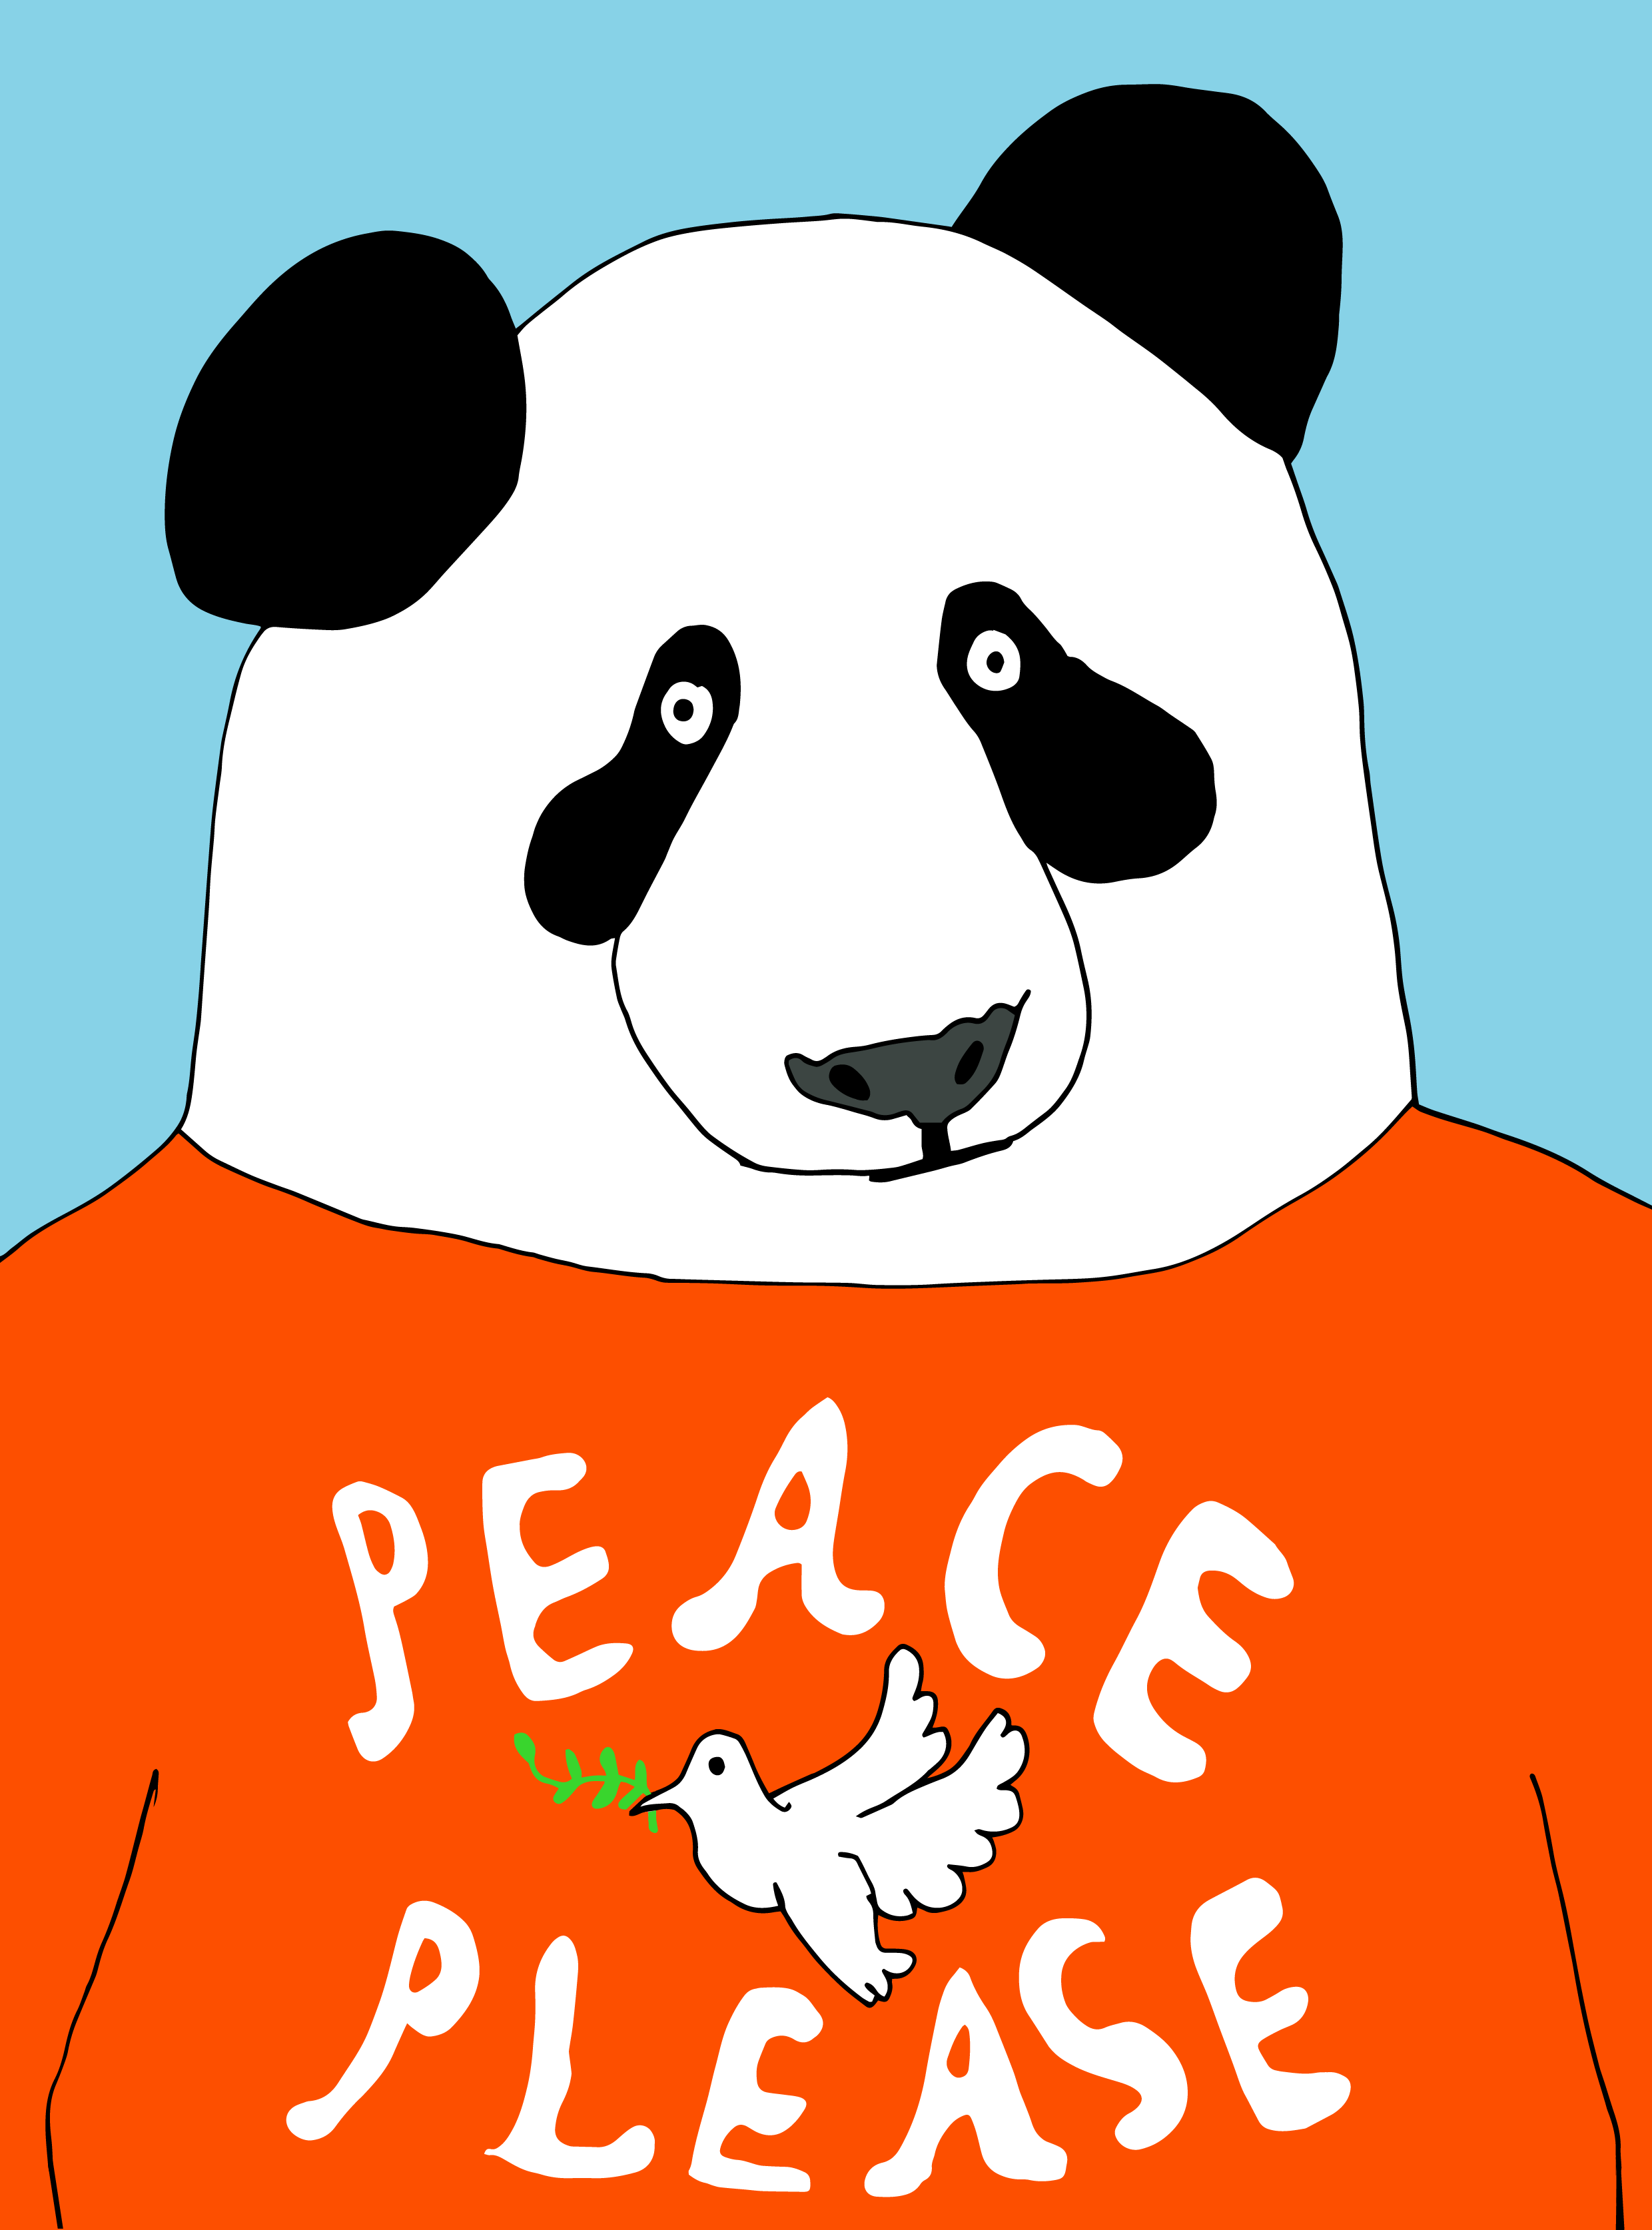 Peace Please / 2016